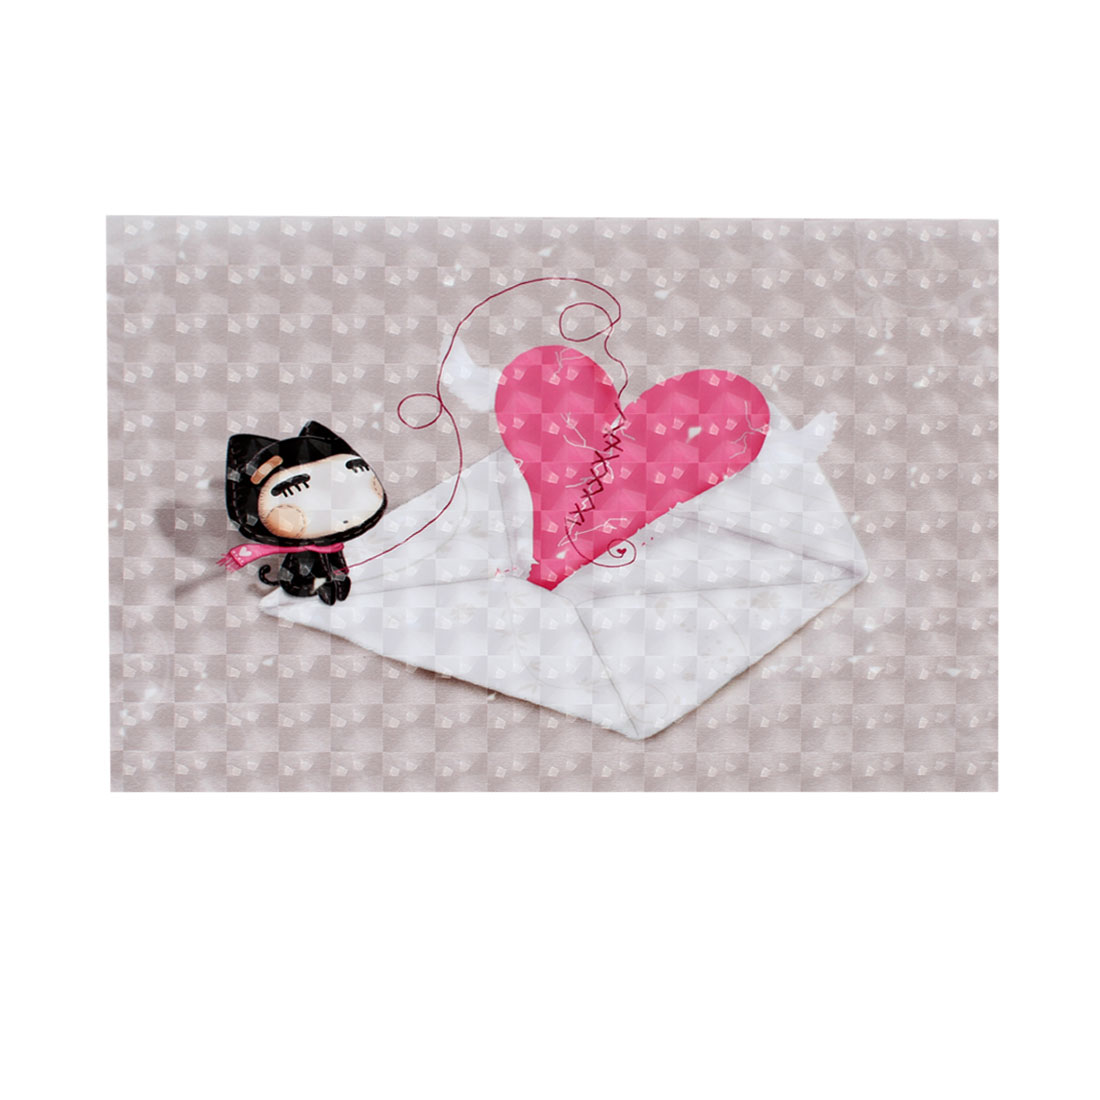 "Cartoon Cat Heart Envelope 3D Decorative Sticker Decal for 15"" 15.4"" Laptop PC"